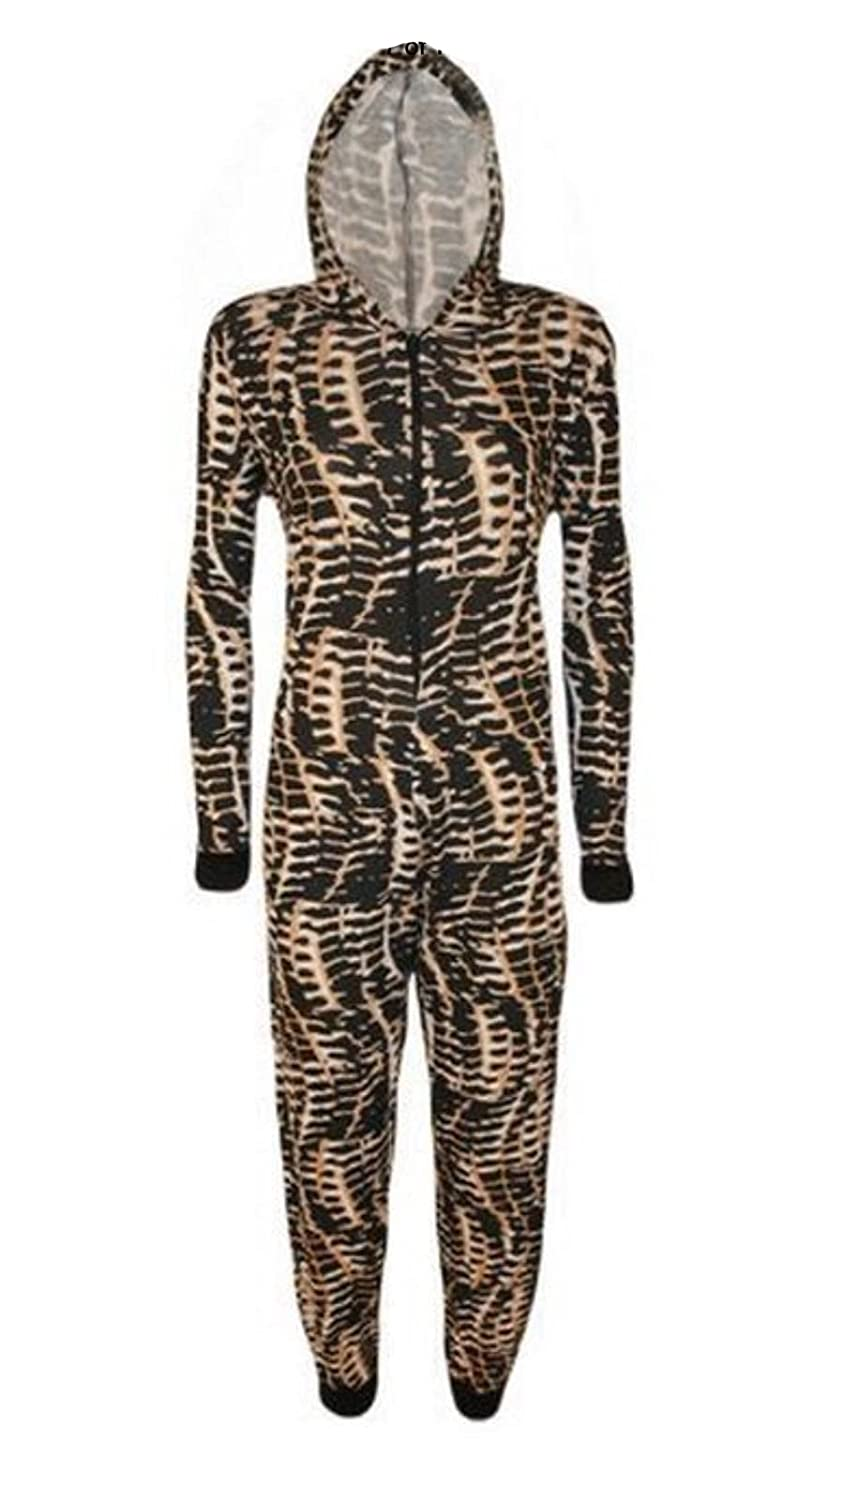 R KON Women Onesie Fashion Printed Playsuit Hooded Ladies Jumpsuit Romper